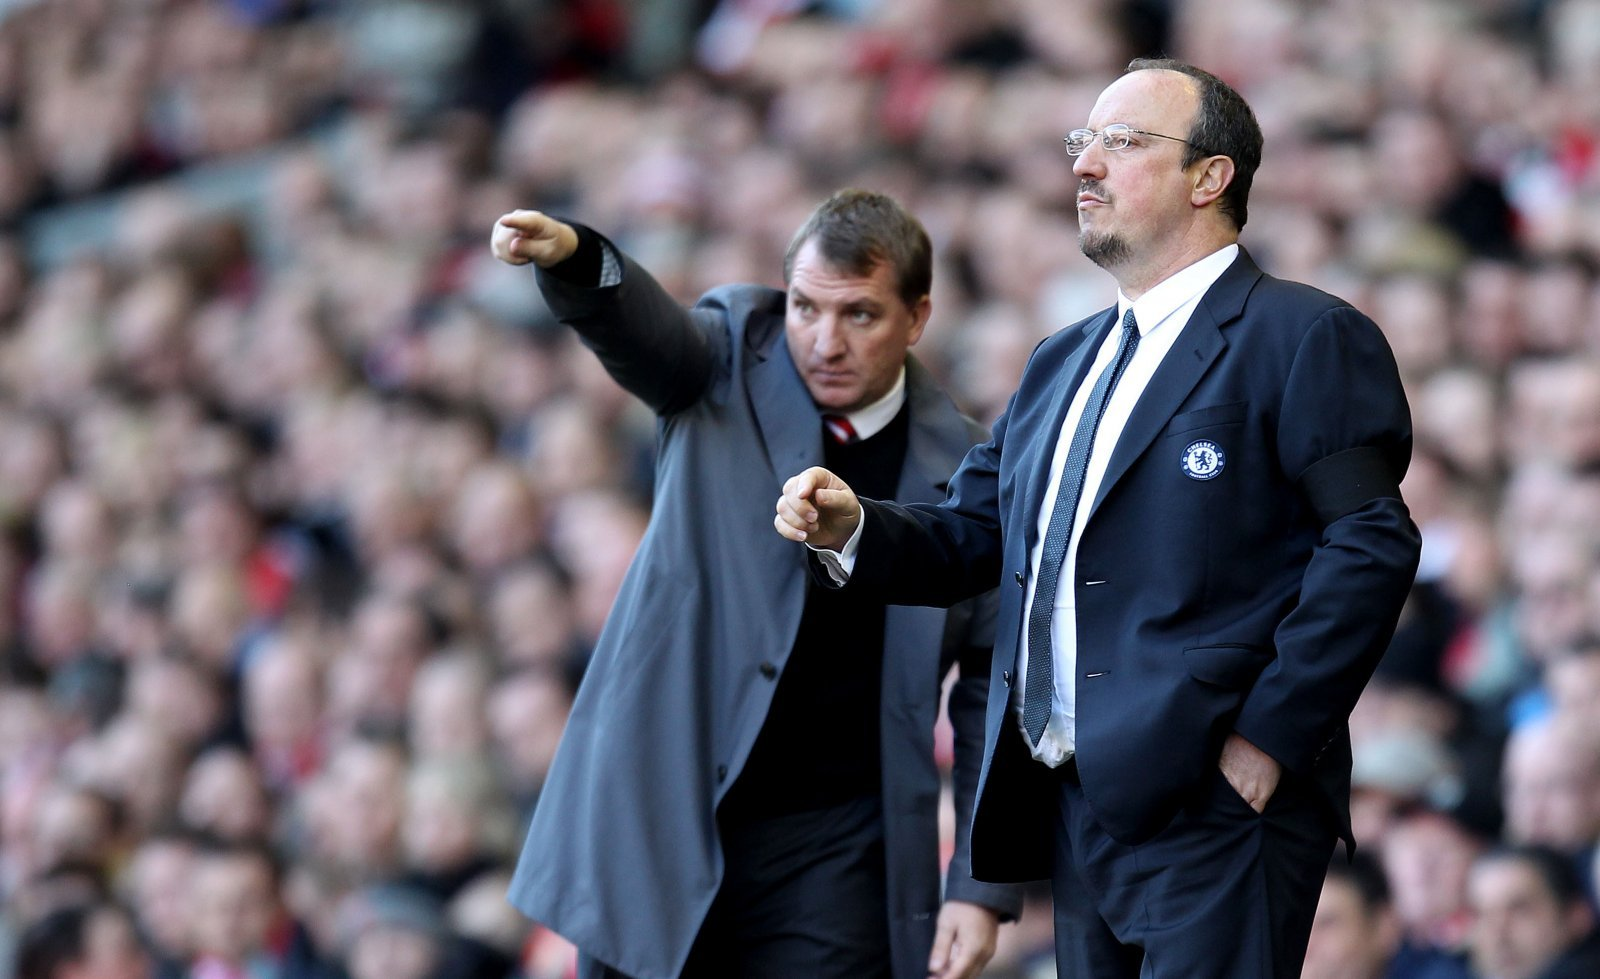 Newcastle United fans on Twitter convinced Benitez was never going to leave for Leicester City